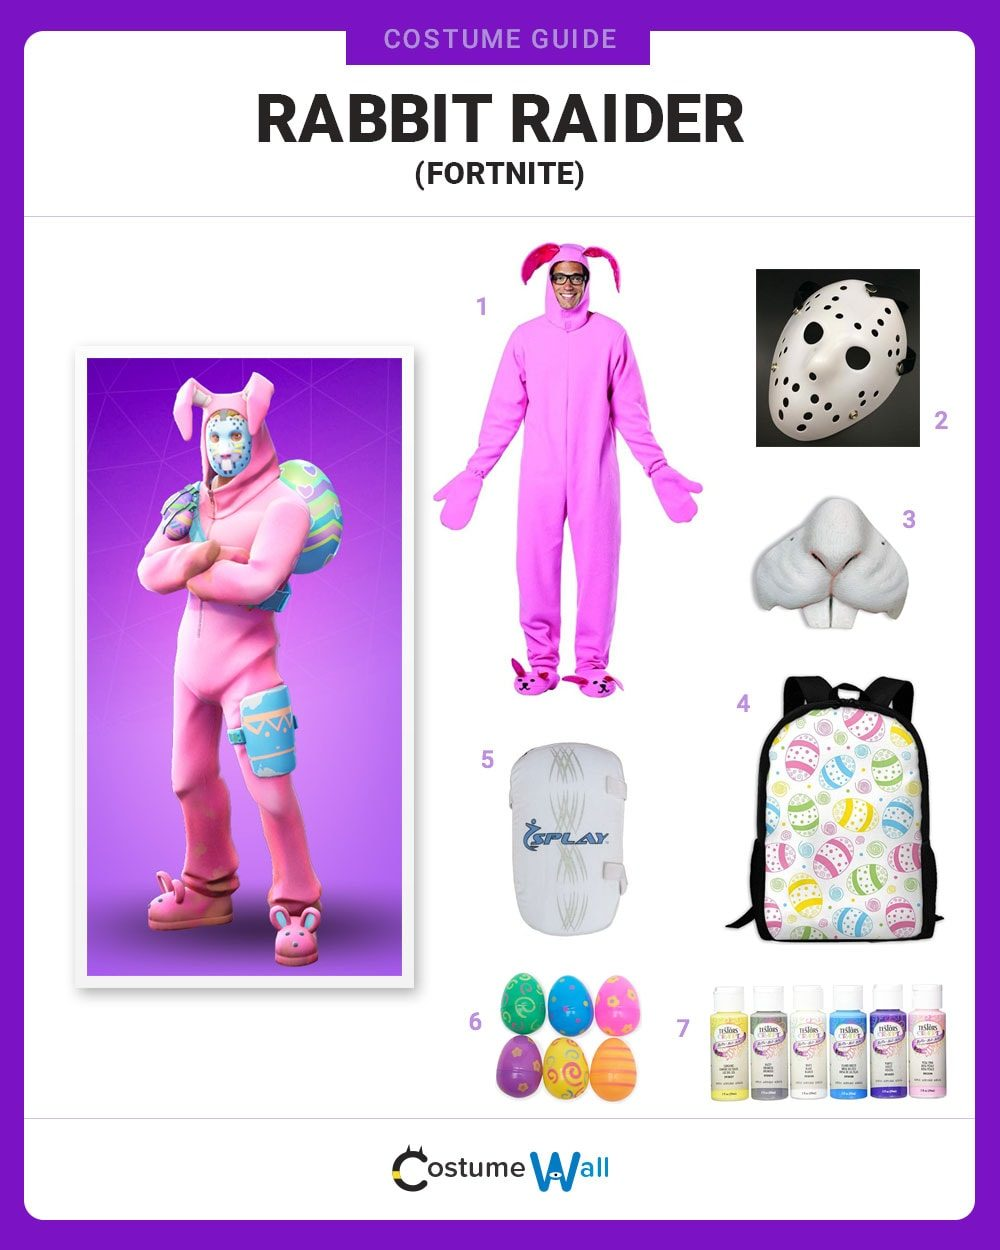 Rabbit Raider Costume Guide